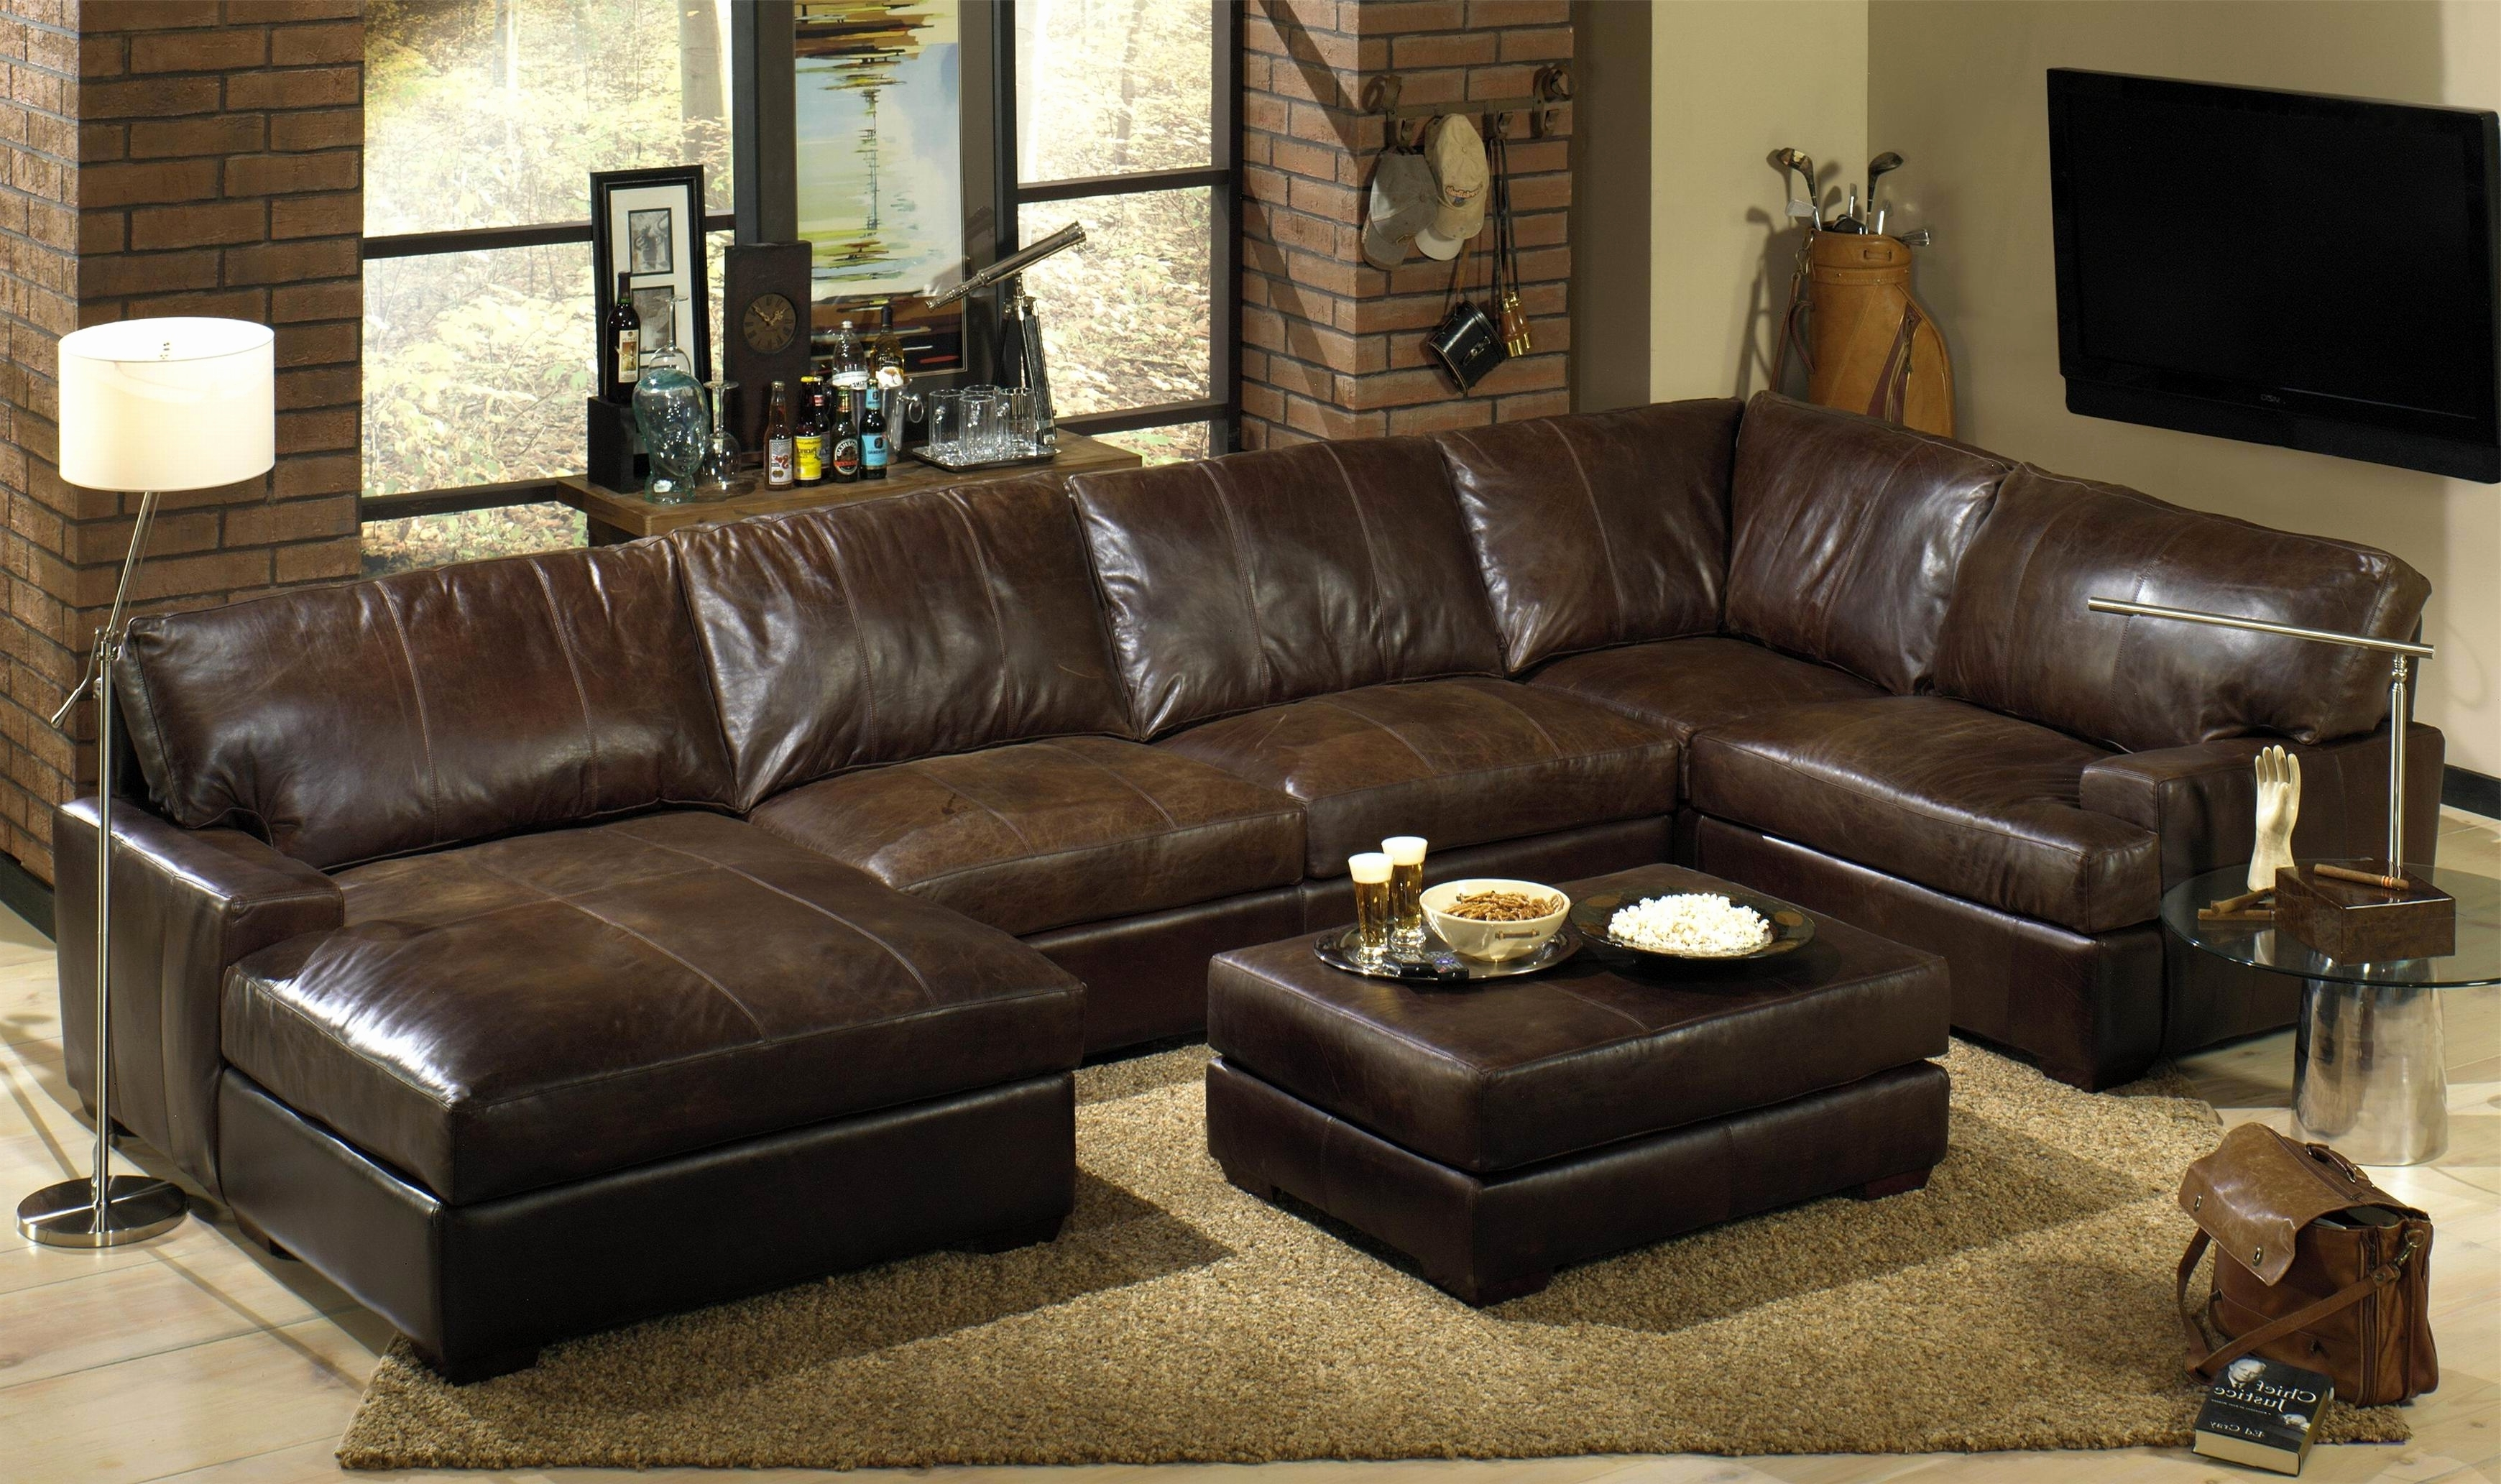 Microsuede Sectional Sofas Inside Well Known New Microsuede Sectional With Chaise 2018 – Couches Ideas (View 6 of 15)